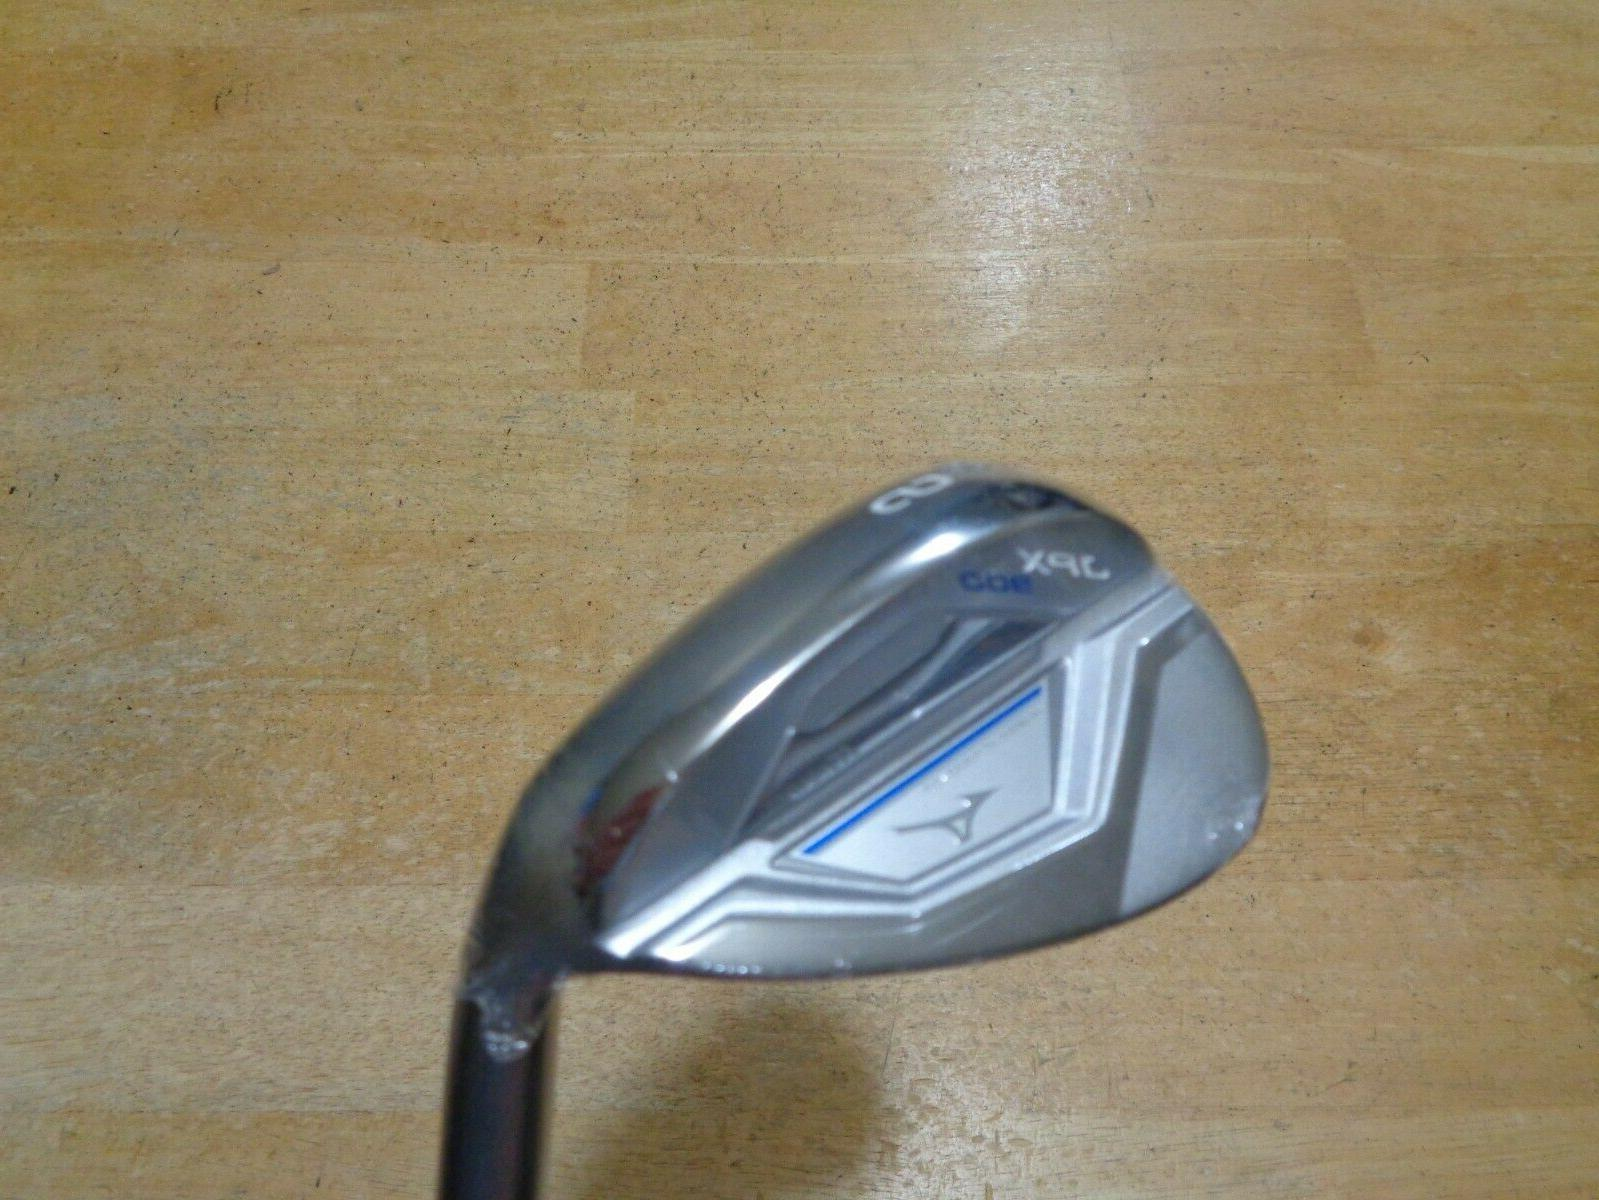 new jpx 900 sand wedge sw irons